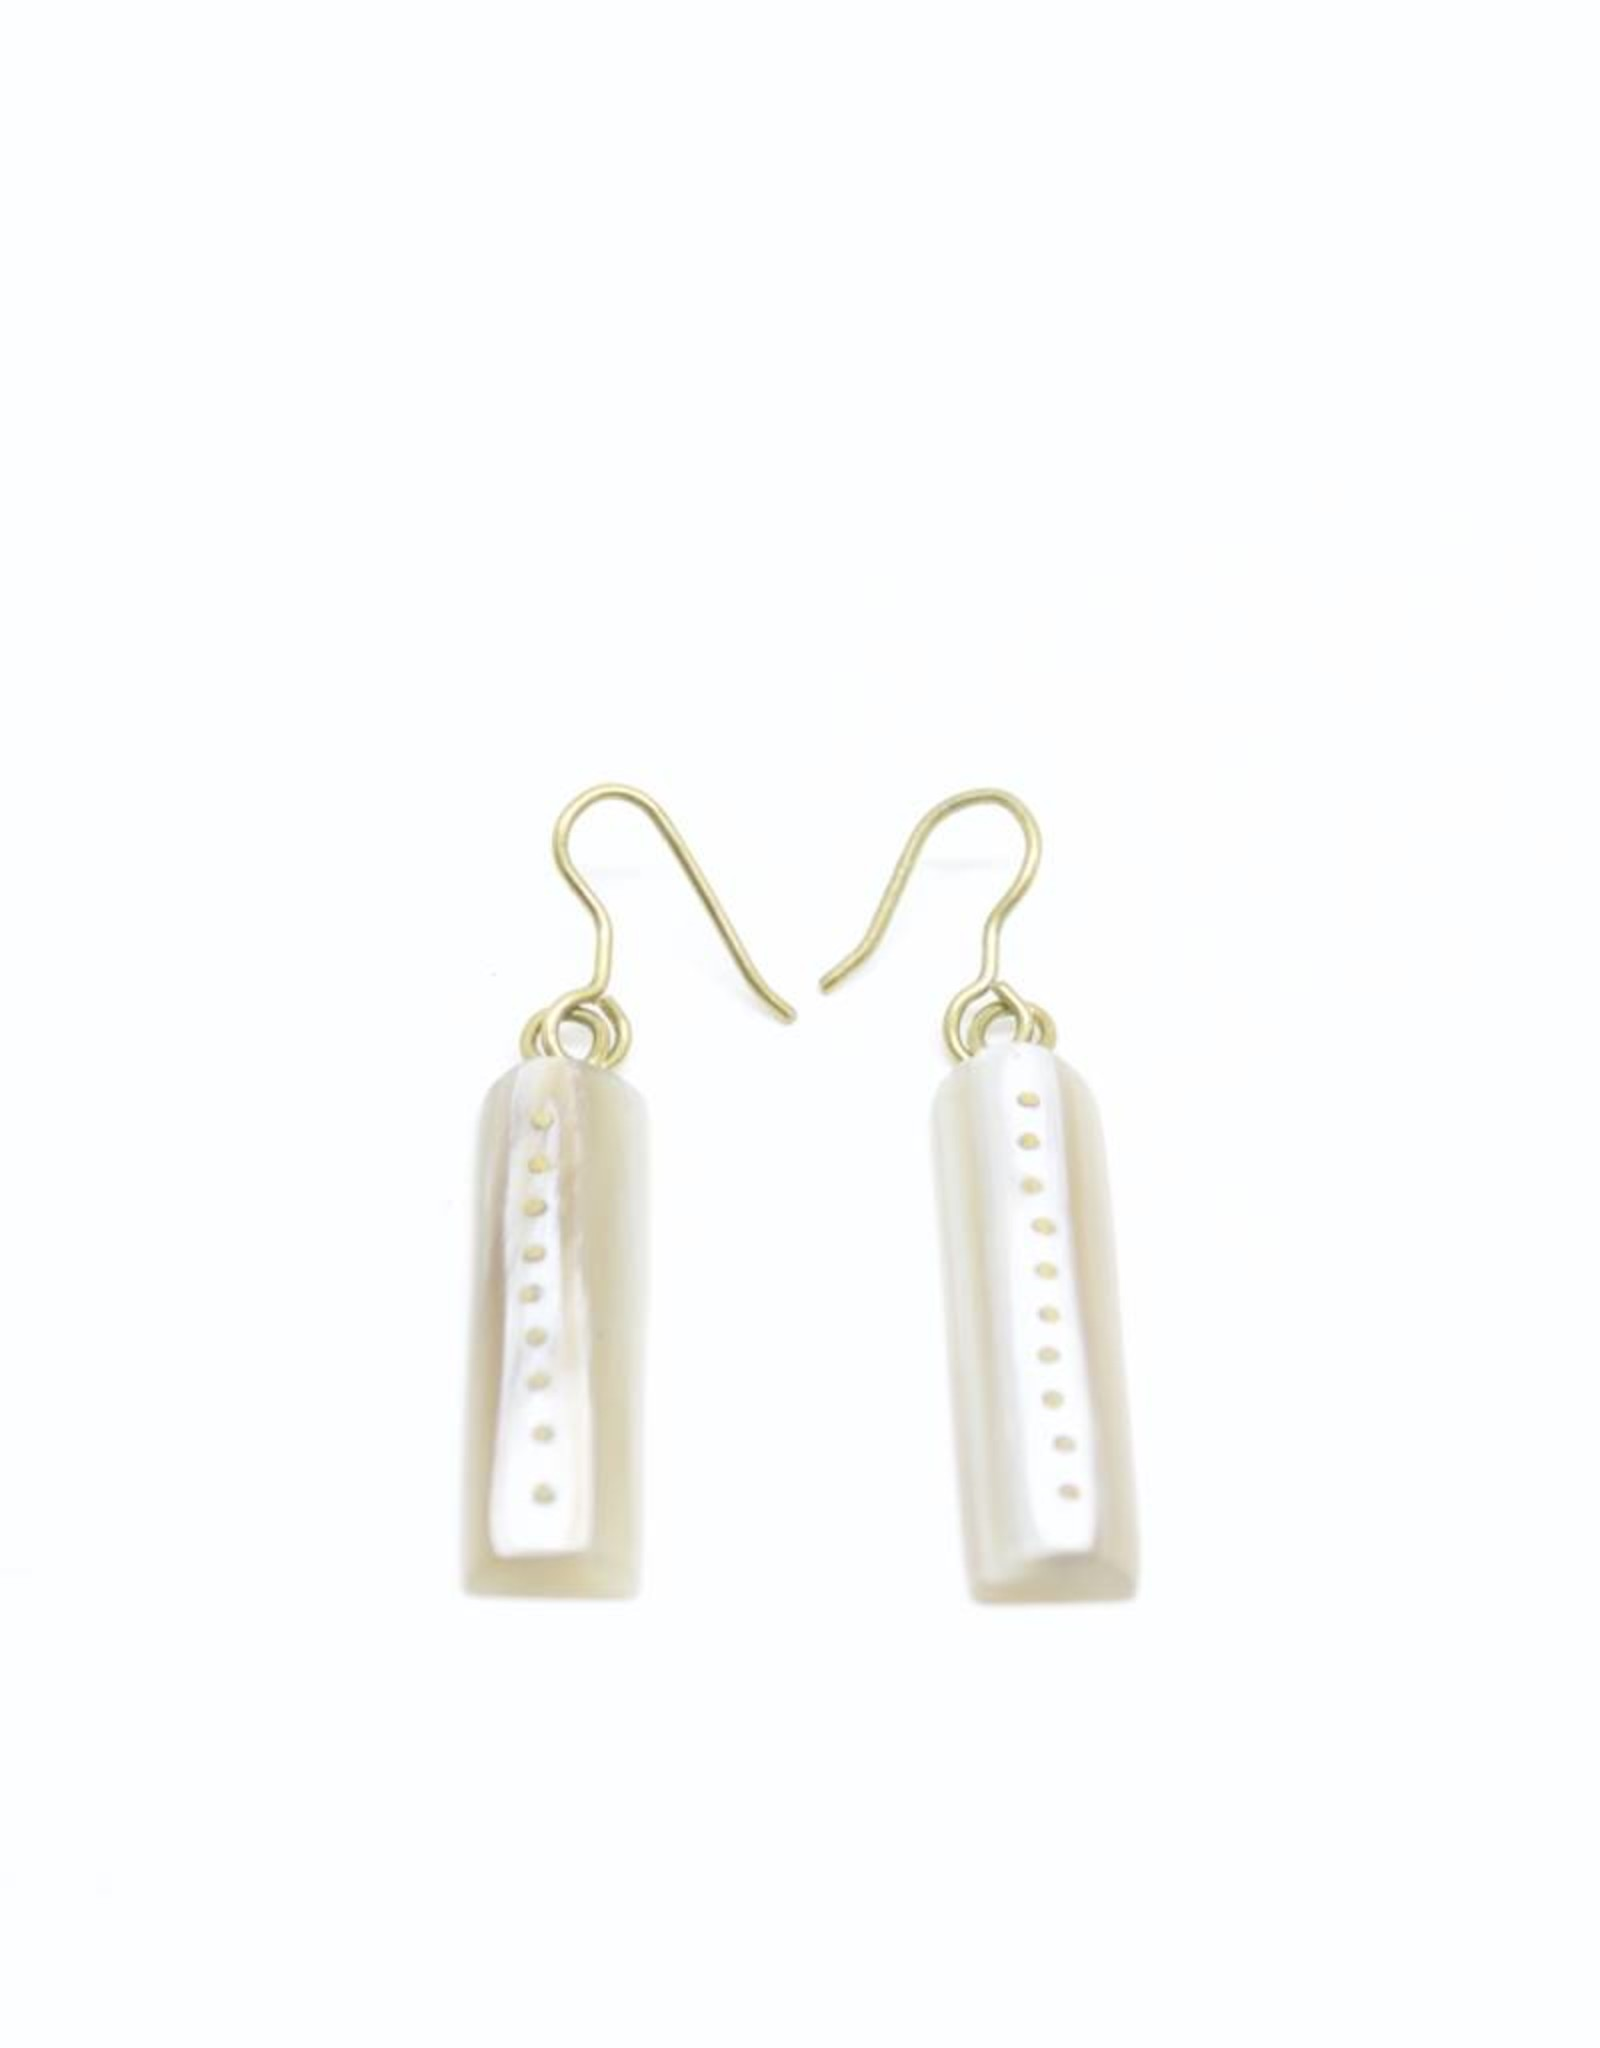 MooMoo Designs Fiya Earrings - Light